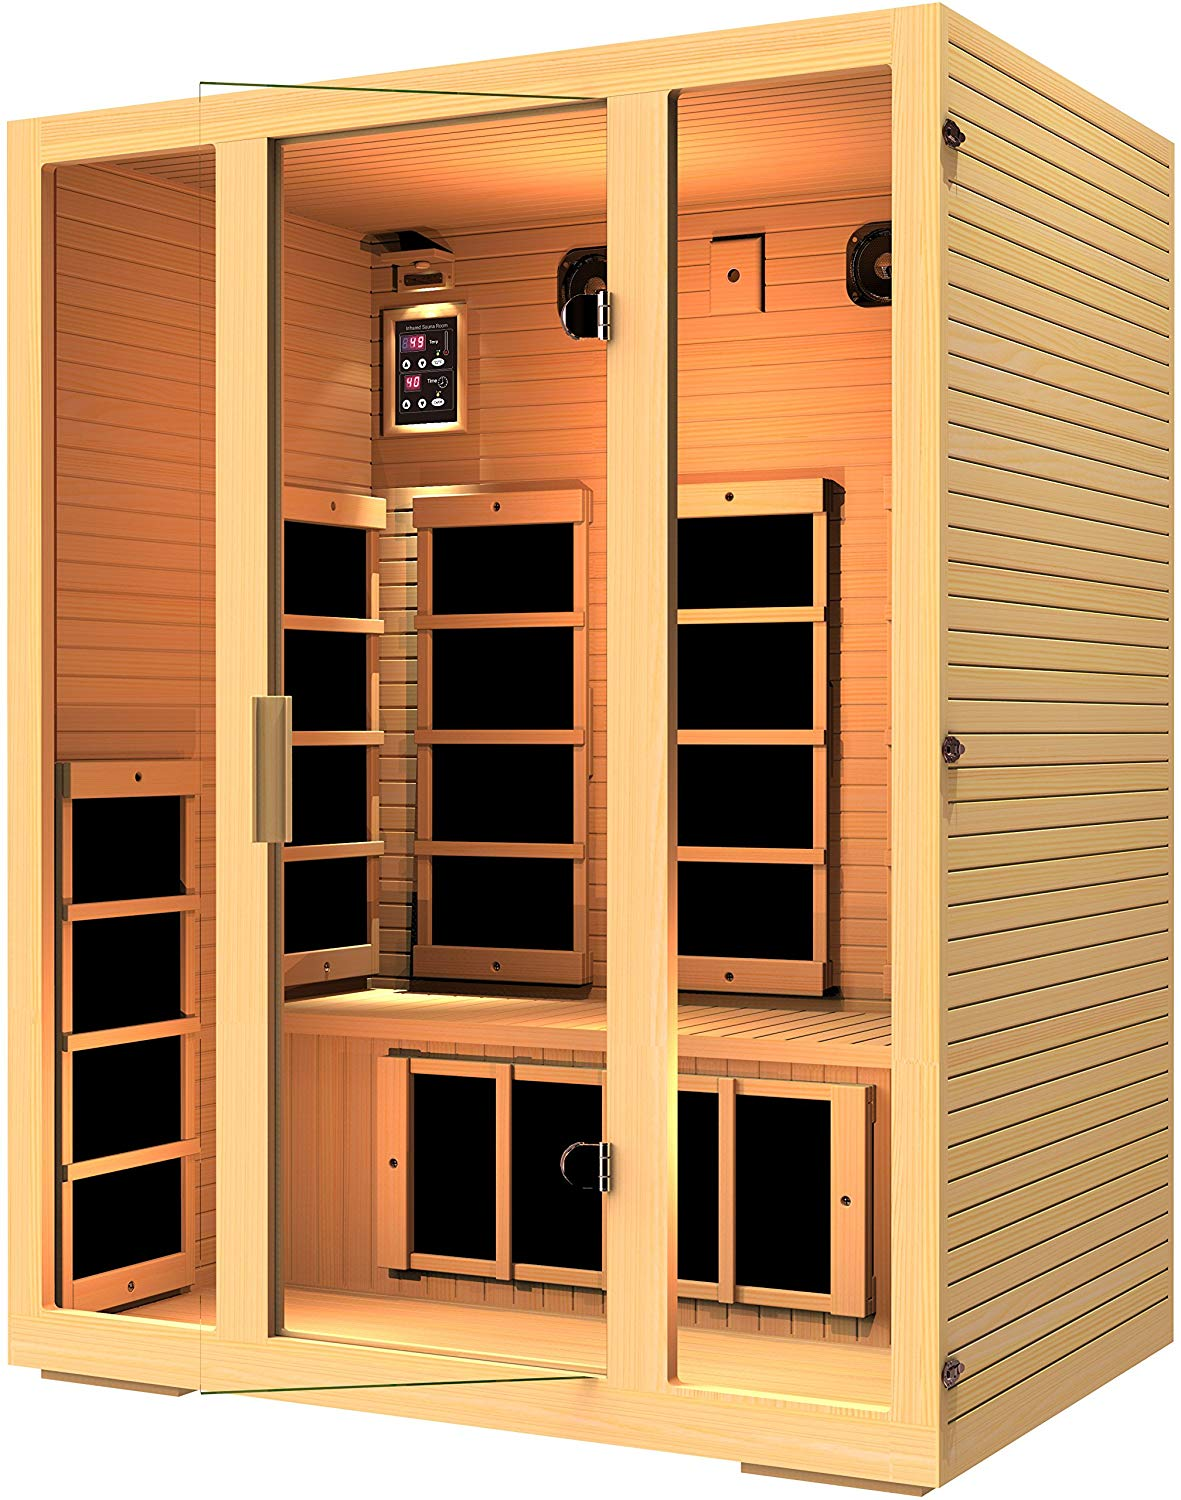 3 person Canadian Hemlock Wood far infrared Sauna buying guide